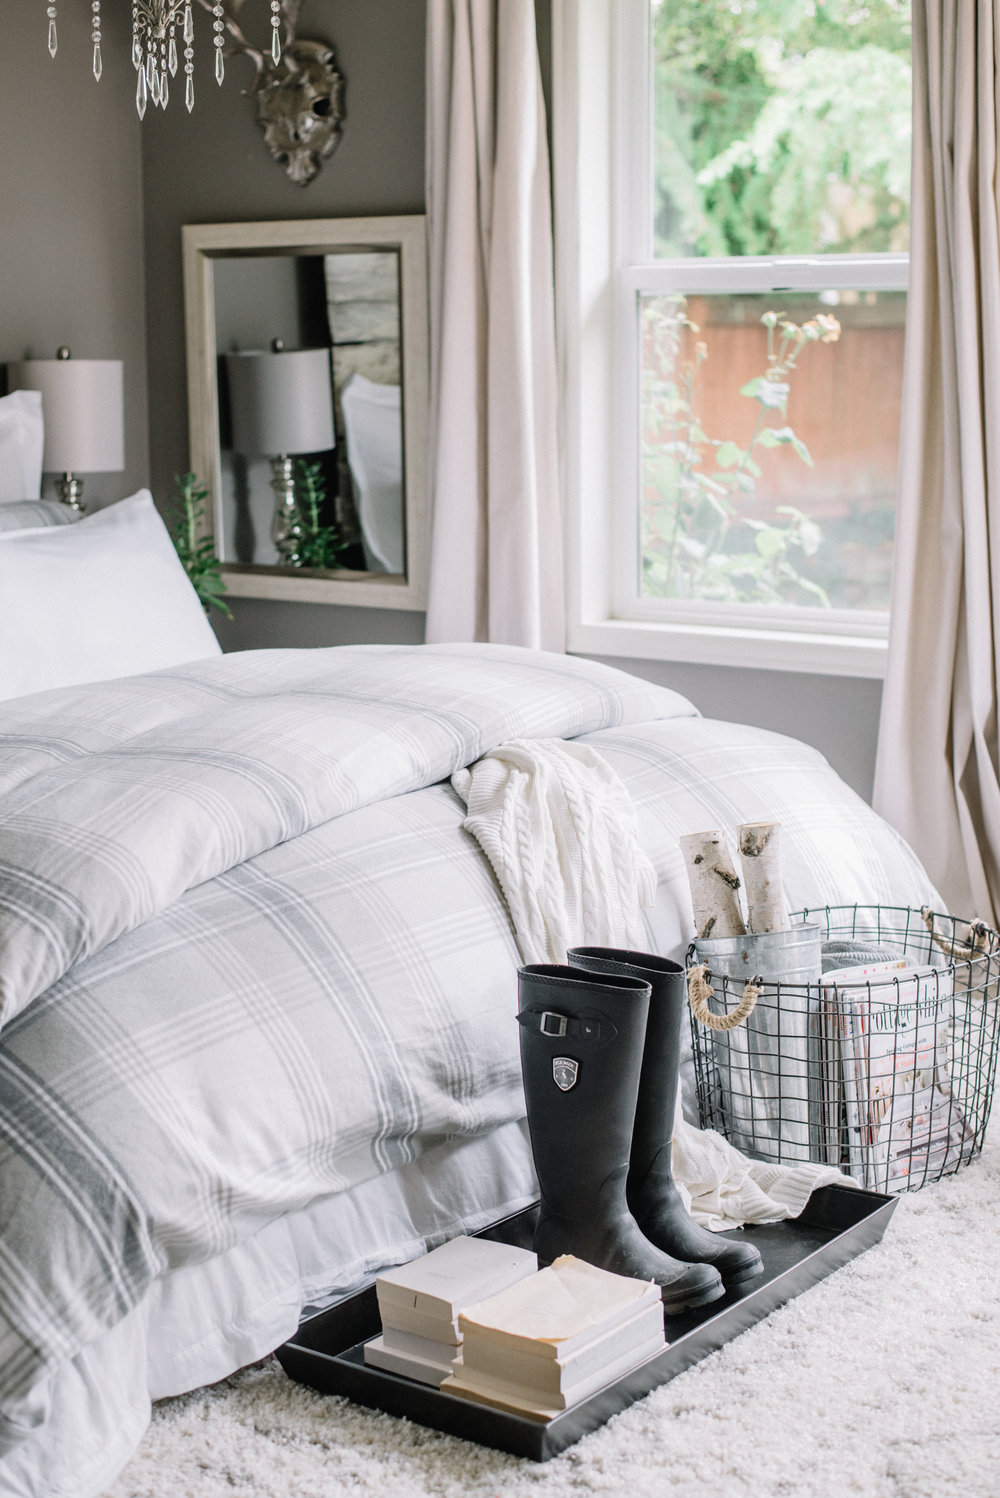 Fall Flannel Gray and White Bedding from Boll & Branch